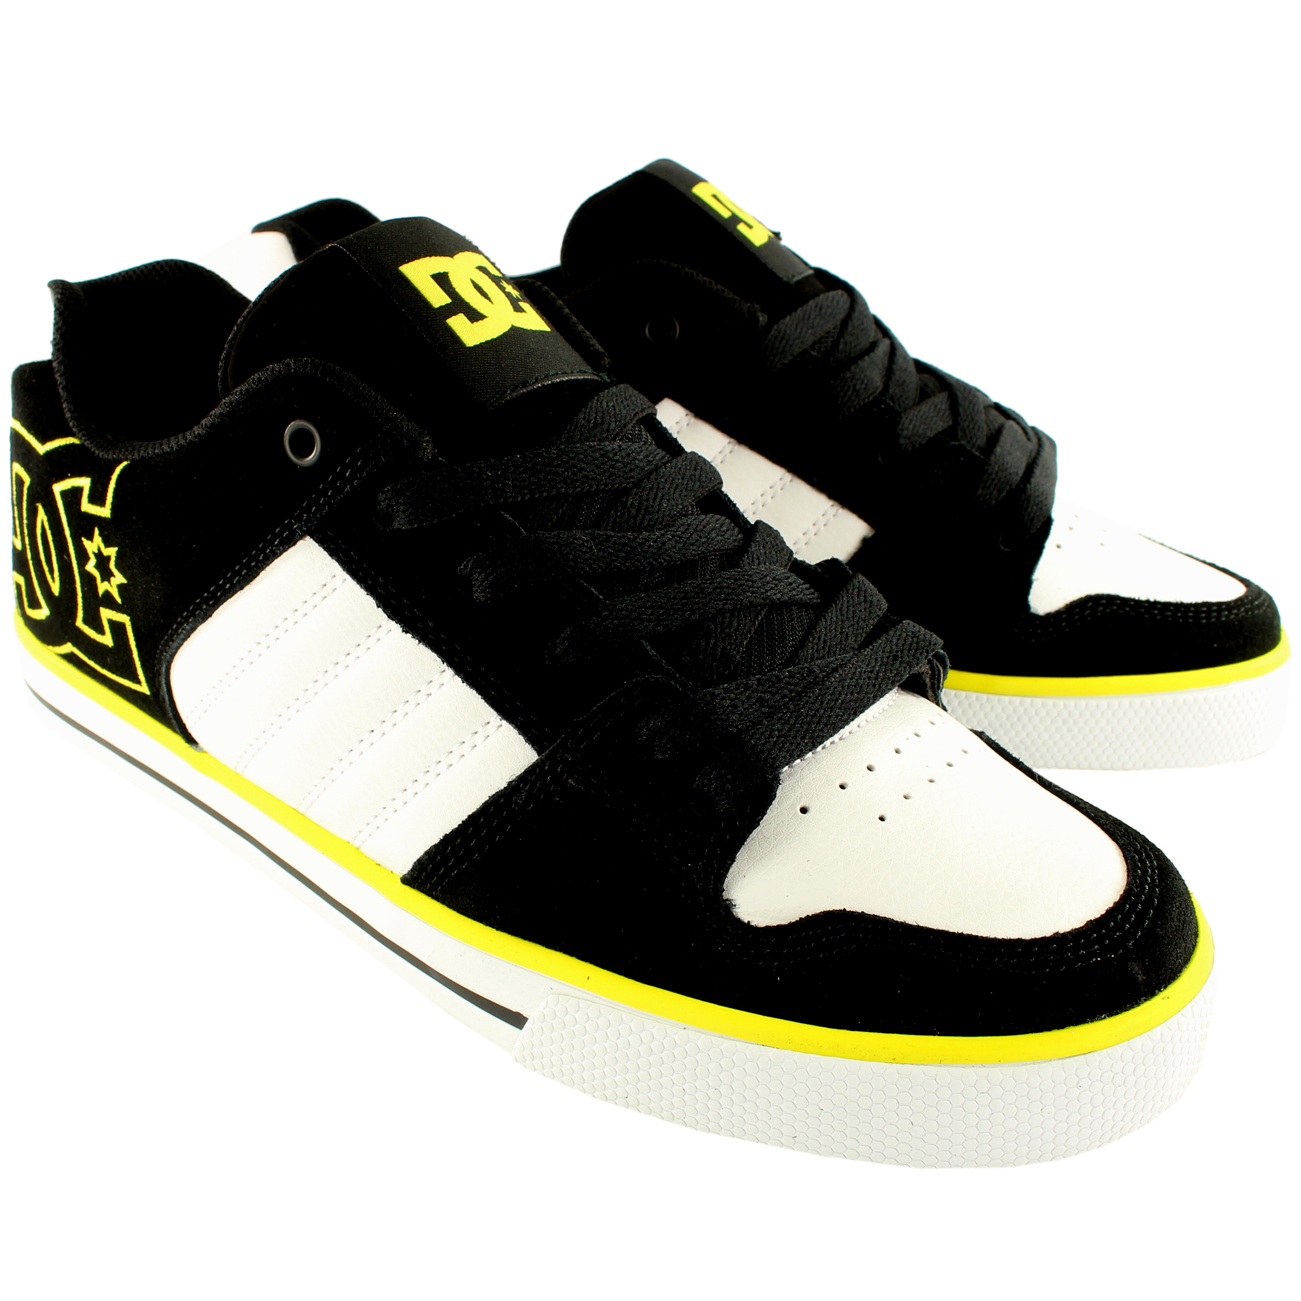 DC Shoes Chase Yellow Skate Shoes